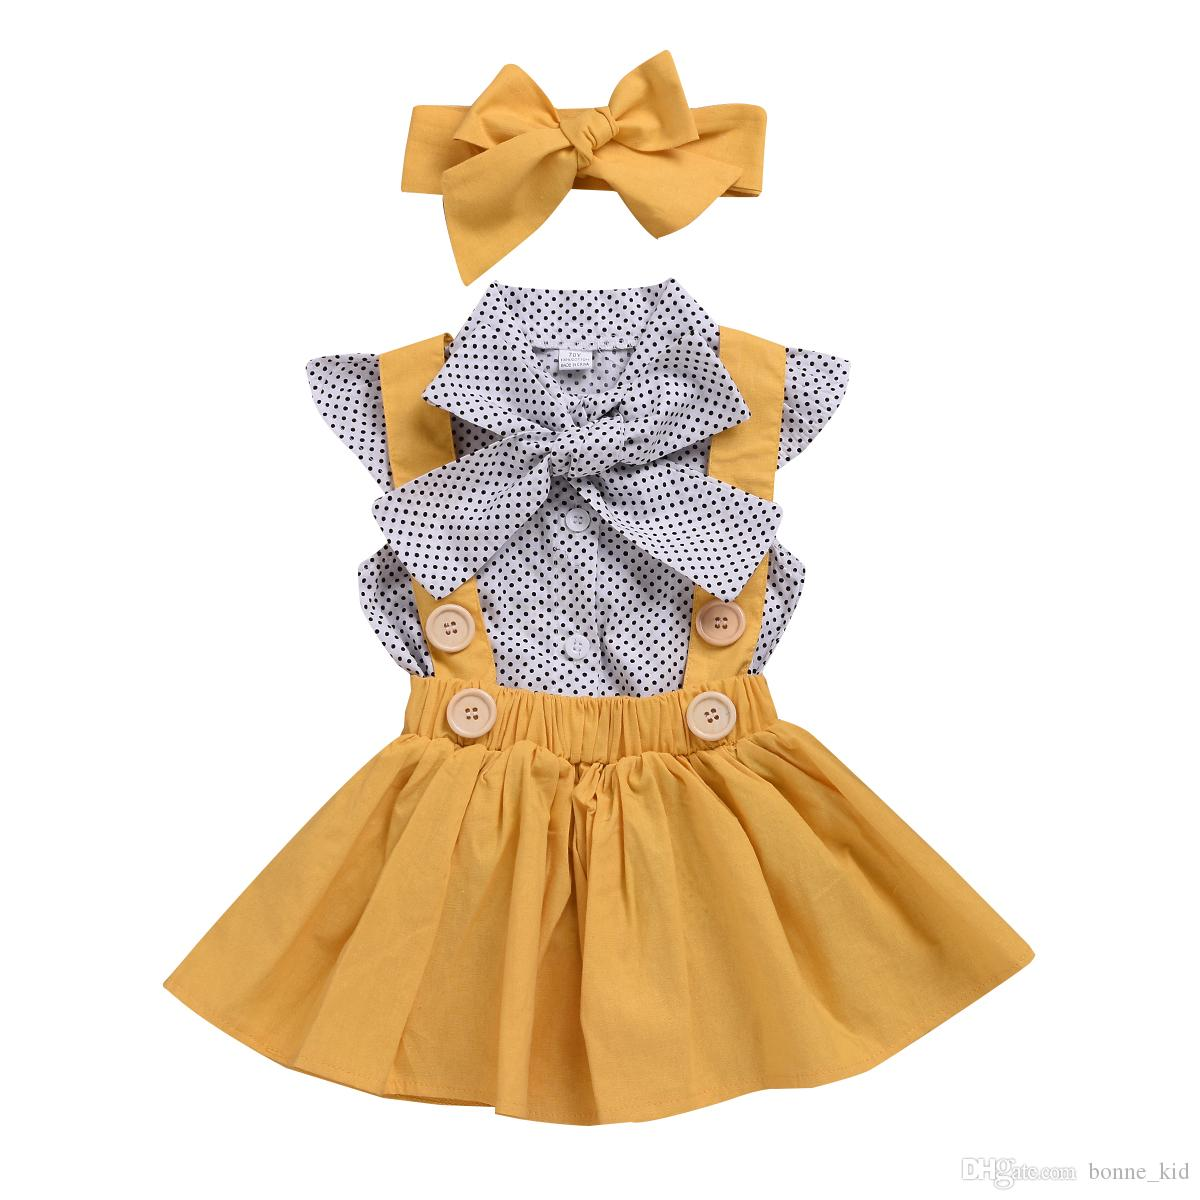 05373fb5d5d 2019 Summer Kids Girls Dot Dresses Suspender Skirt Baby Girls Party Bow  Sundress Short Sleeve Retro Clothes Kid Girl Clothing Fashion Boutique From  ...